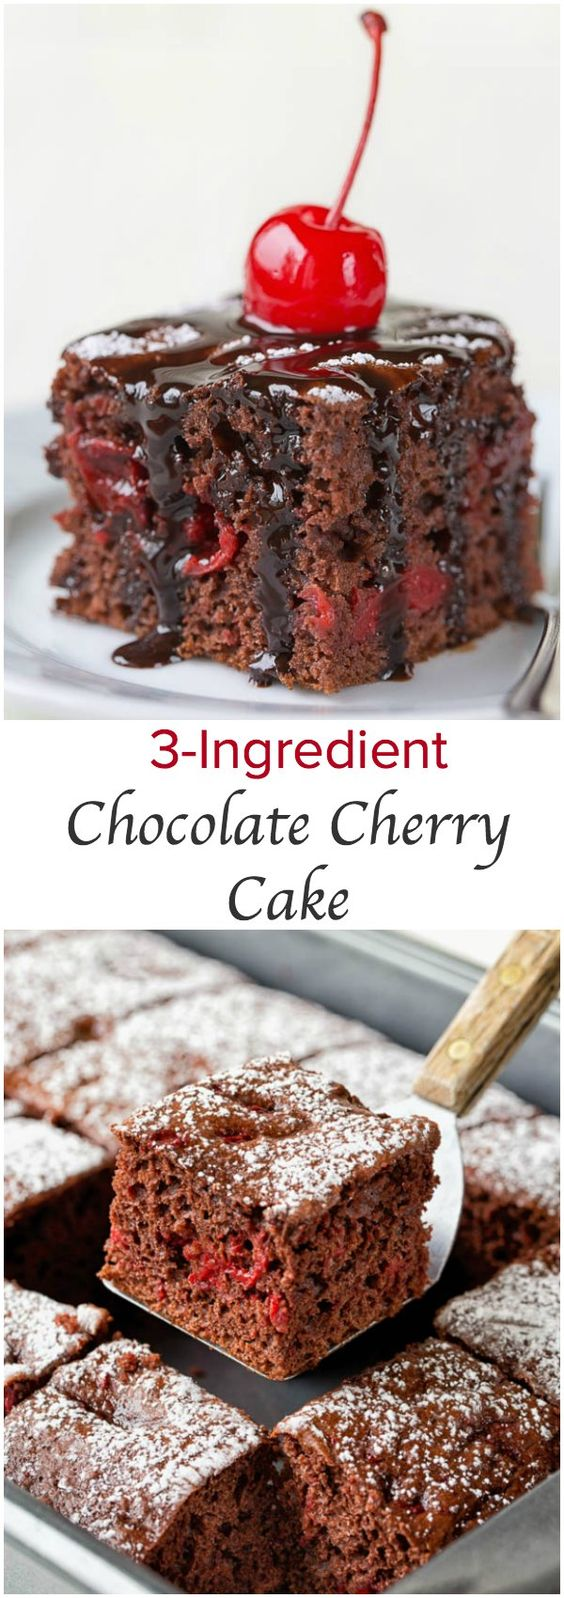 3-Ingredient Chocolate Cherry Cake